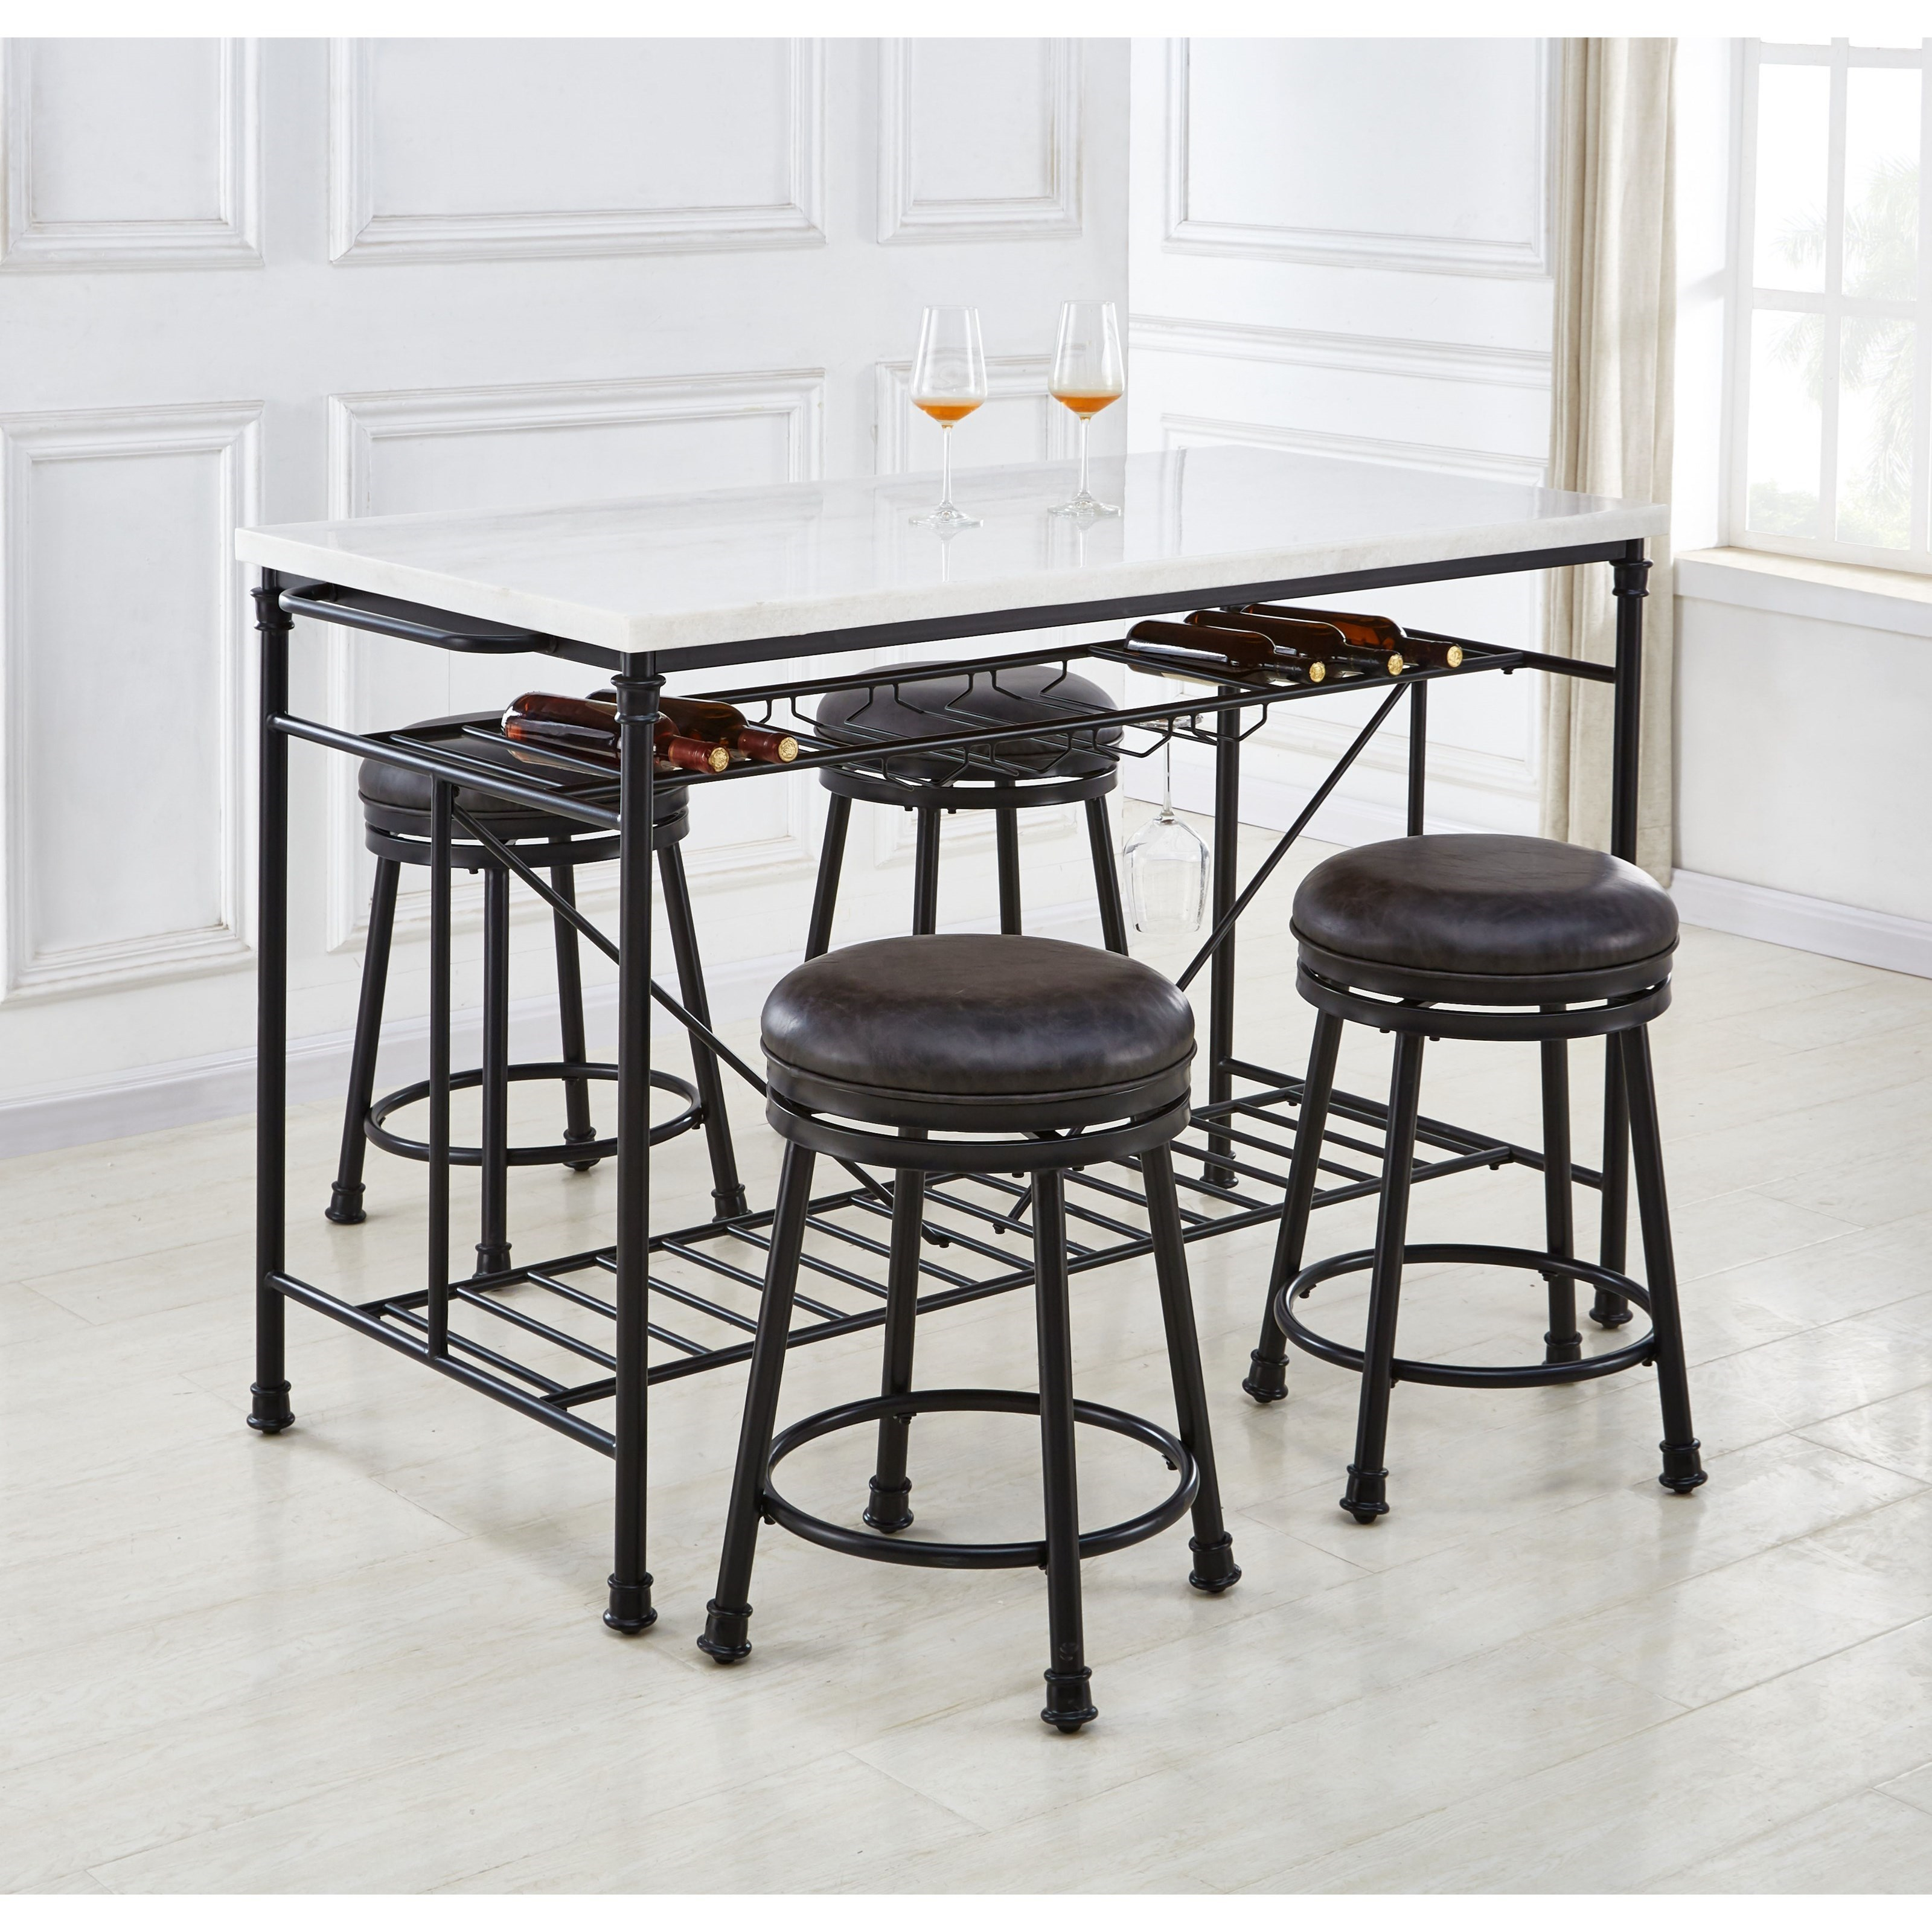 Claire 5-Piece Kitchen Island and Stool Set by Steve Silver at Walker's Furniture